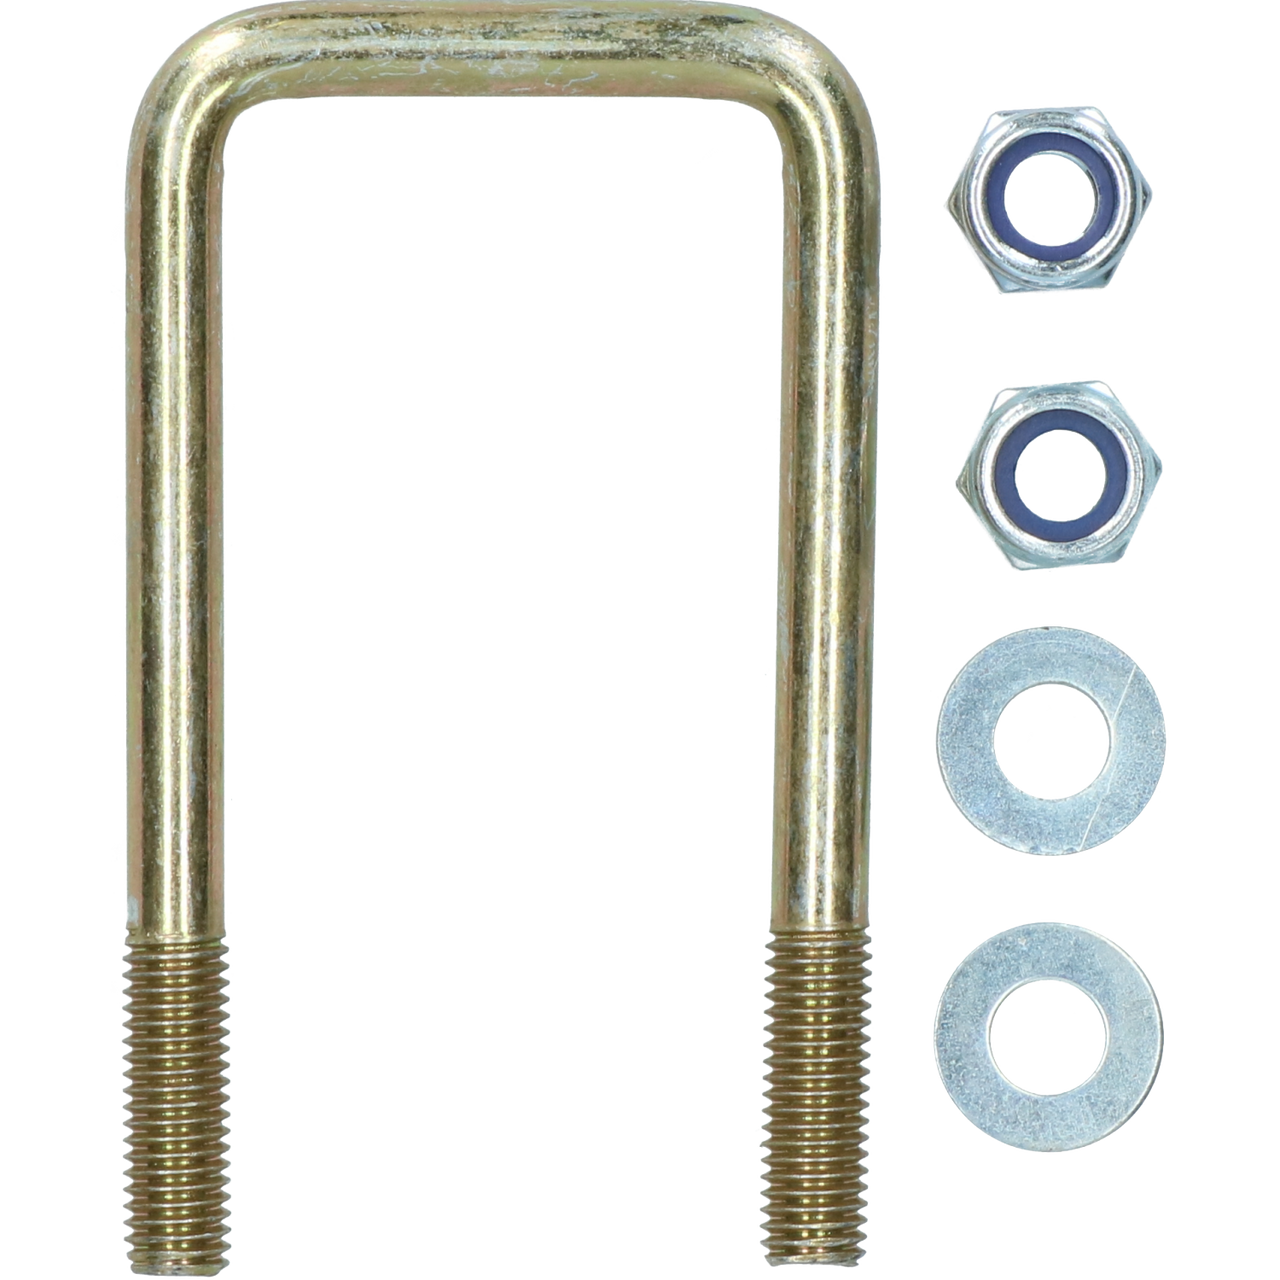 M10 50mm x 100mm UBolt / NBolt for Trailer 1 PAIR with Nuts HIGH TENSILE UBR06